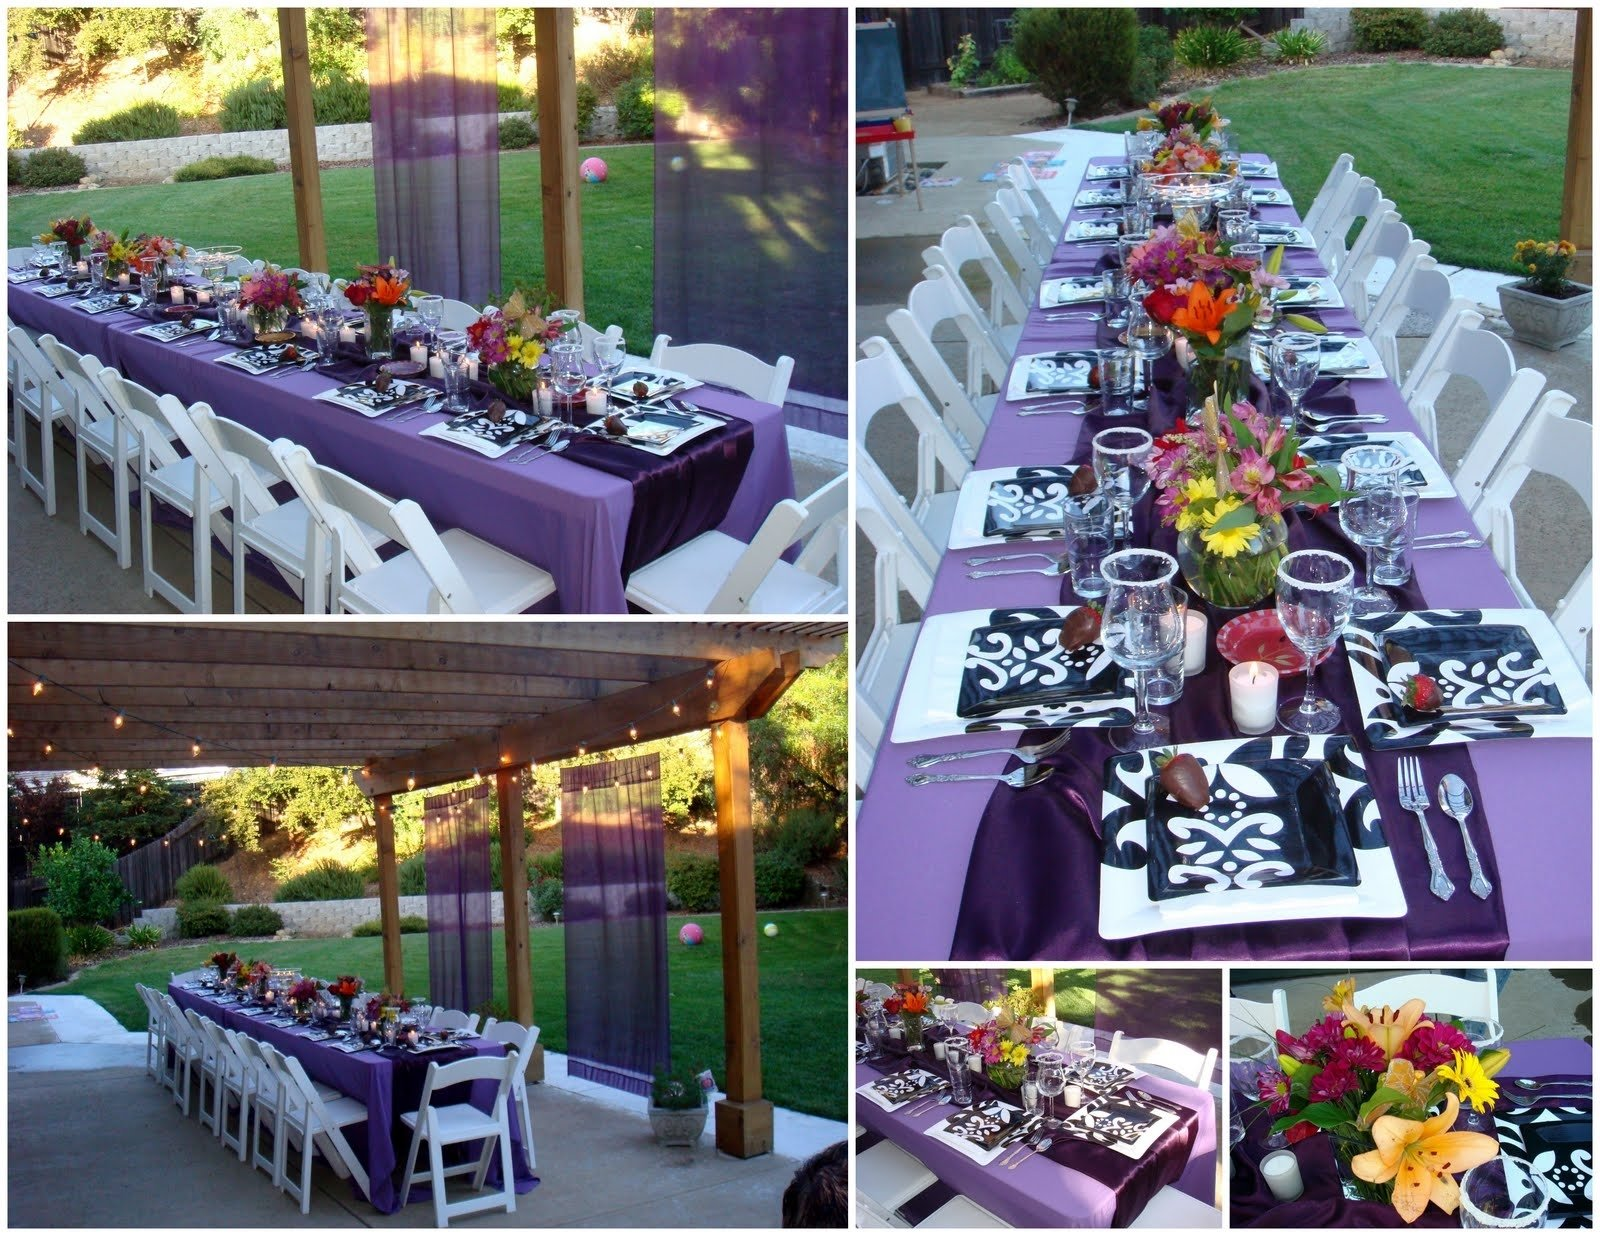 10 Beautiful Ideas For High School Graduation Party high school graduation party ideas summer graduation party 2020